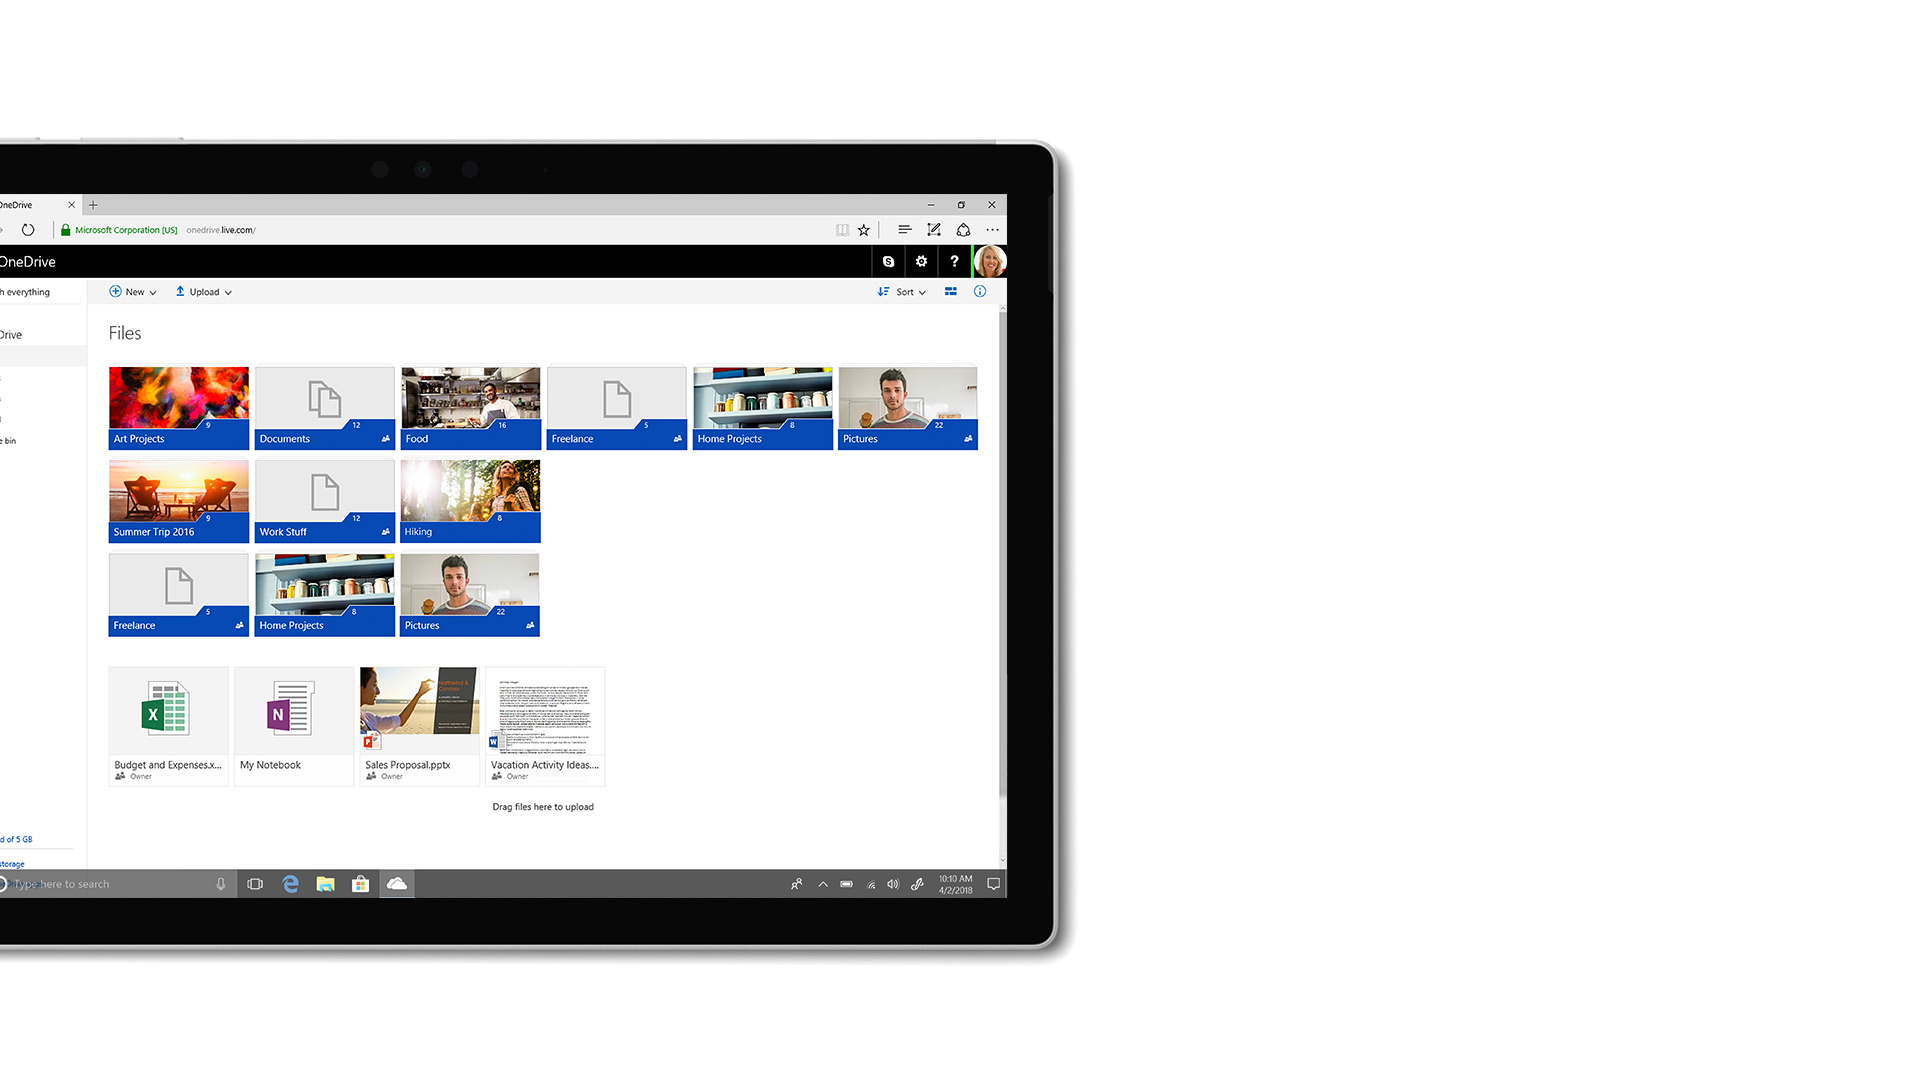 Image of user interface of Microsoft OneDrive